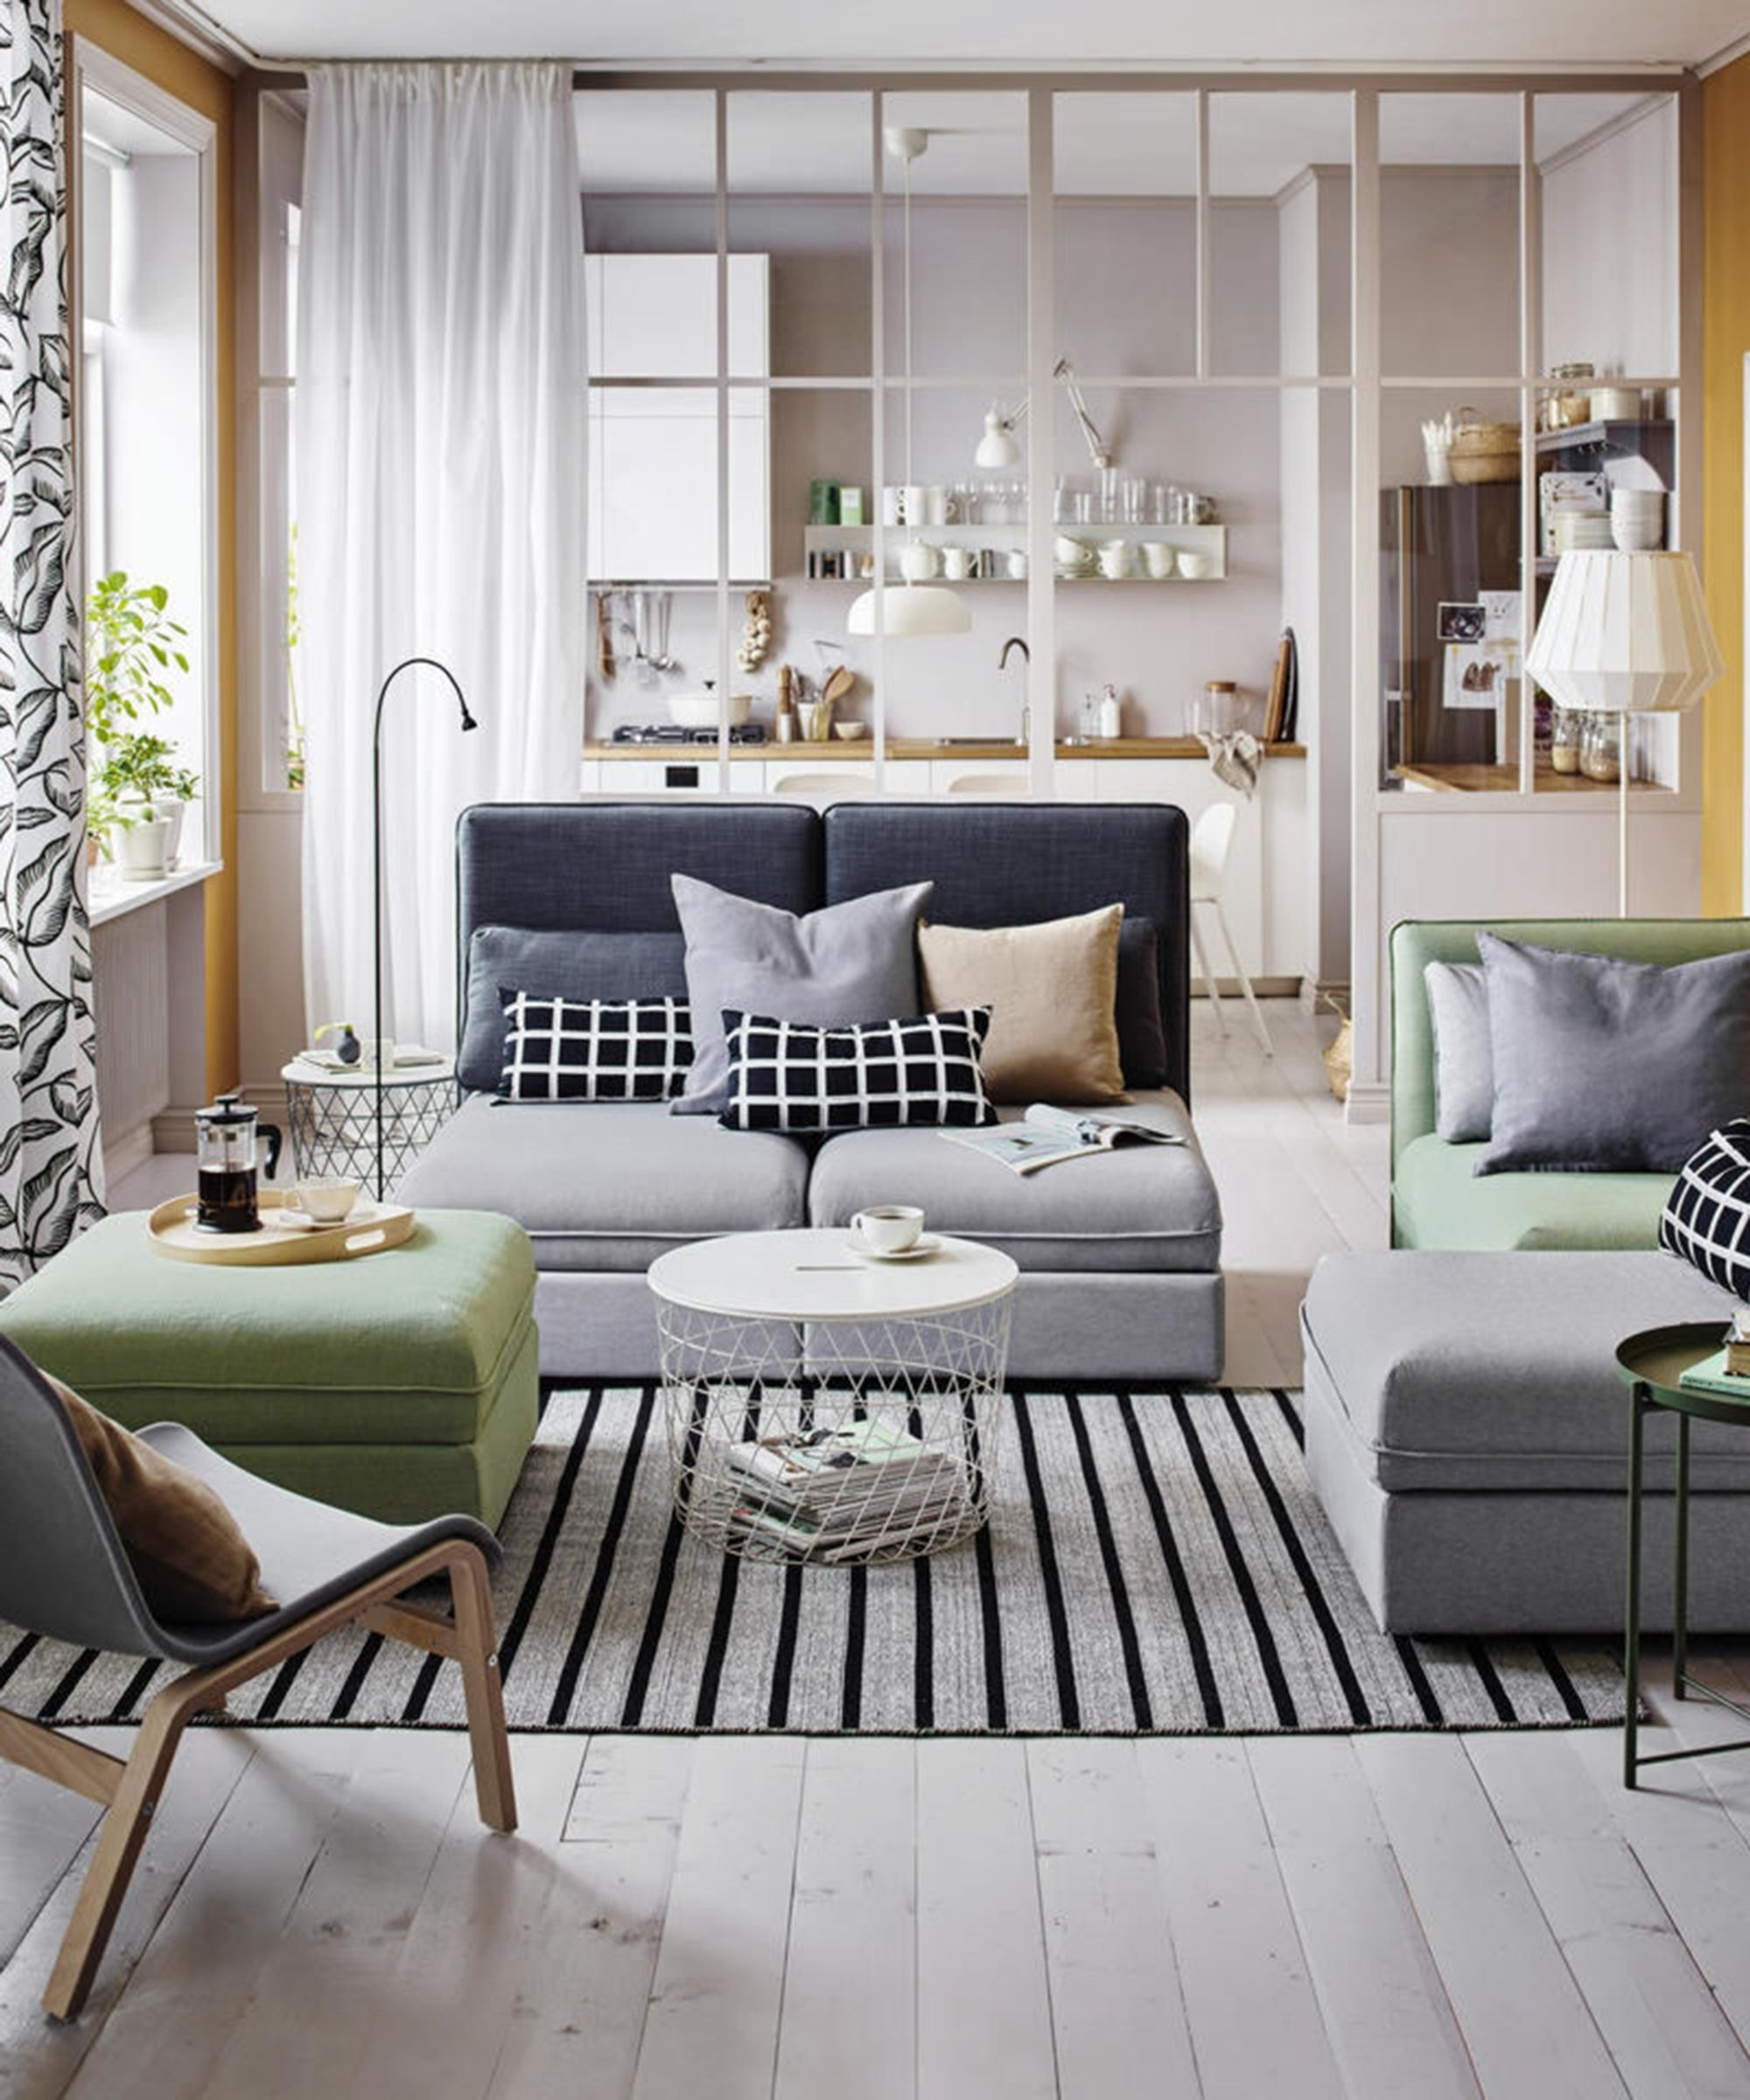 All The Home Products You Need From Ikea S 2018 Catalog Living Room Furniture Layout Ikea 2018 Home